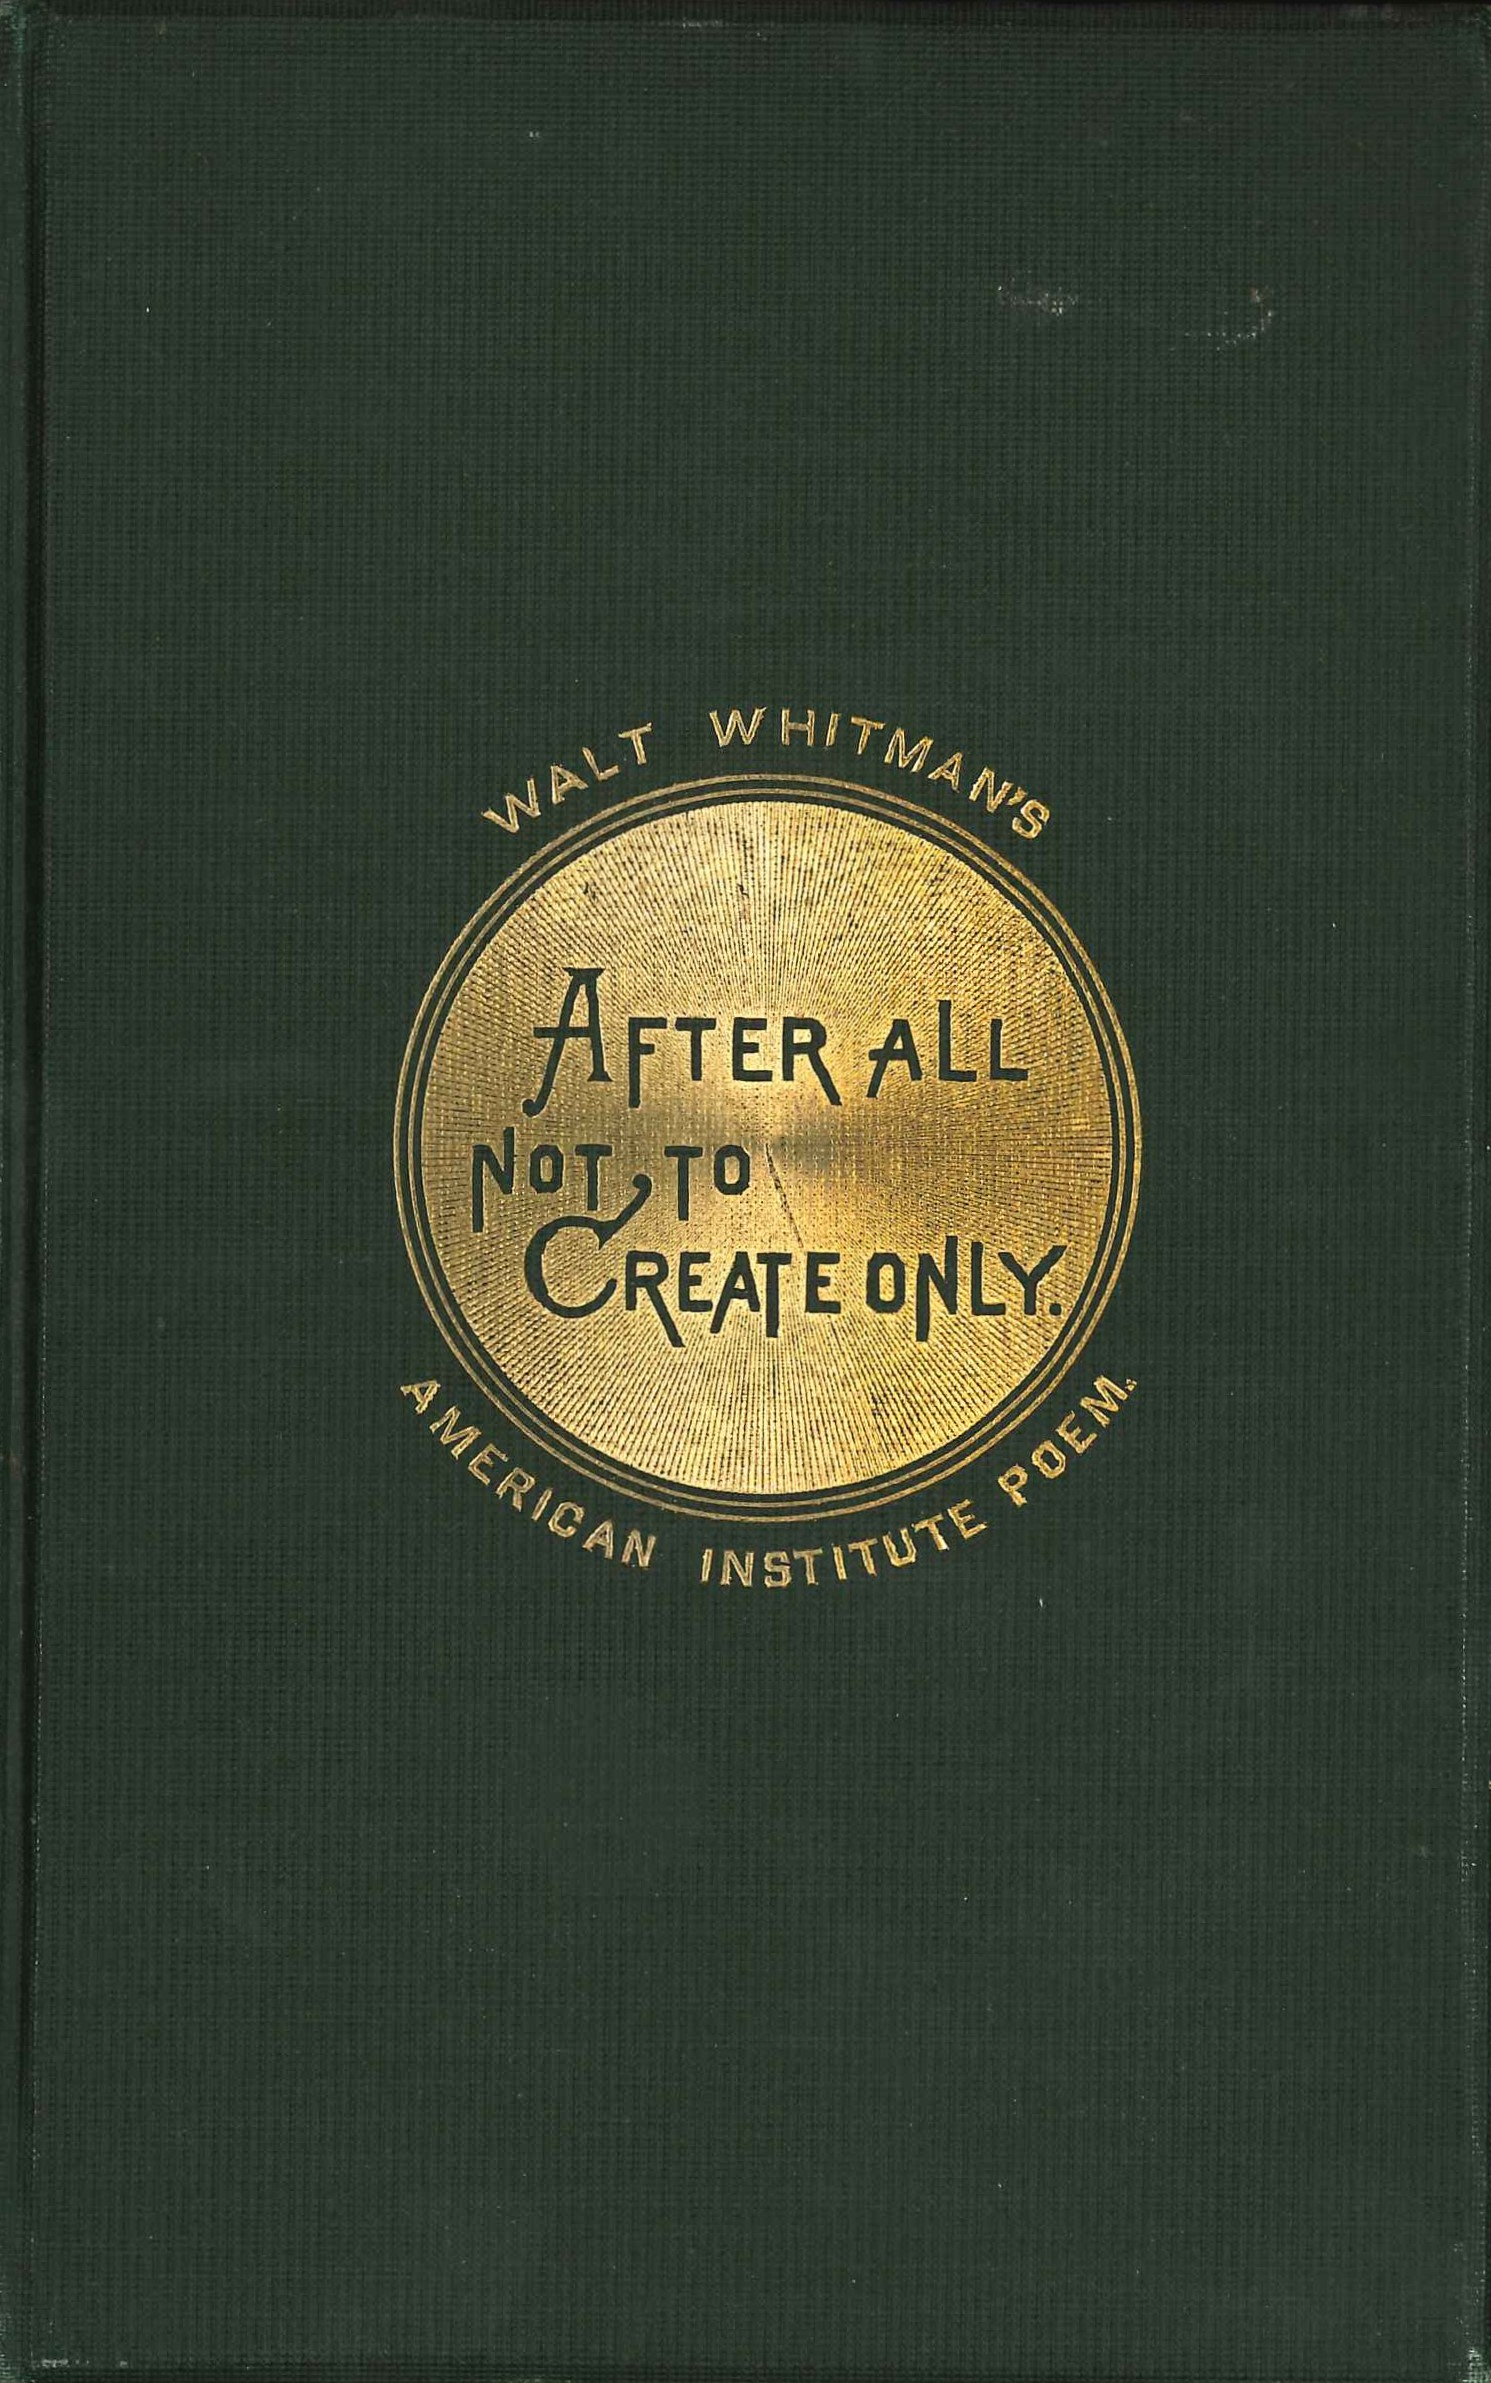 Walt Whitman. After All, Not to Create Only: Recited by Walt Whitman on Invitation of Managers, American Institute, on Opening Their 40th Annual Exhibition, New York, Noon, September 7, 1871. Boston: Roberts Brothers, 1871.